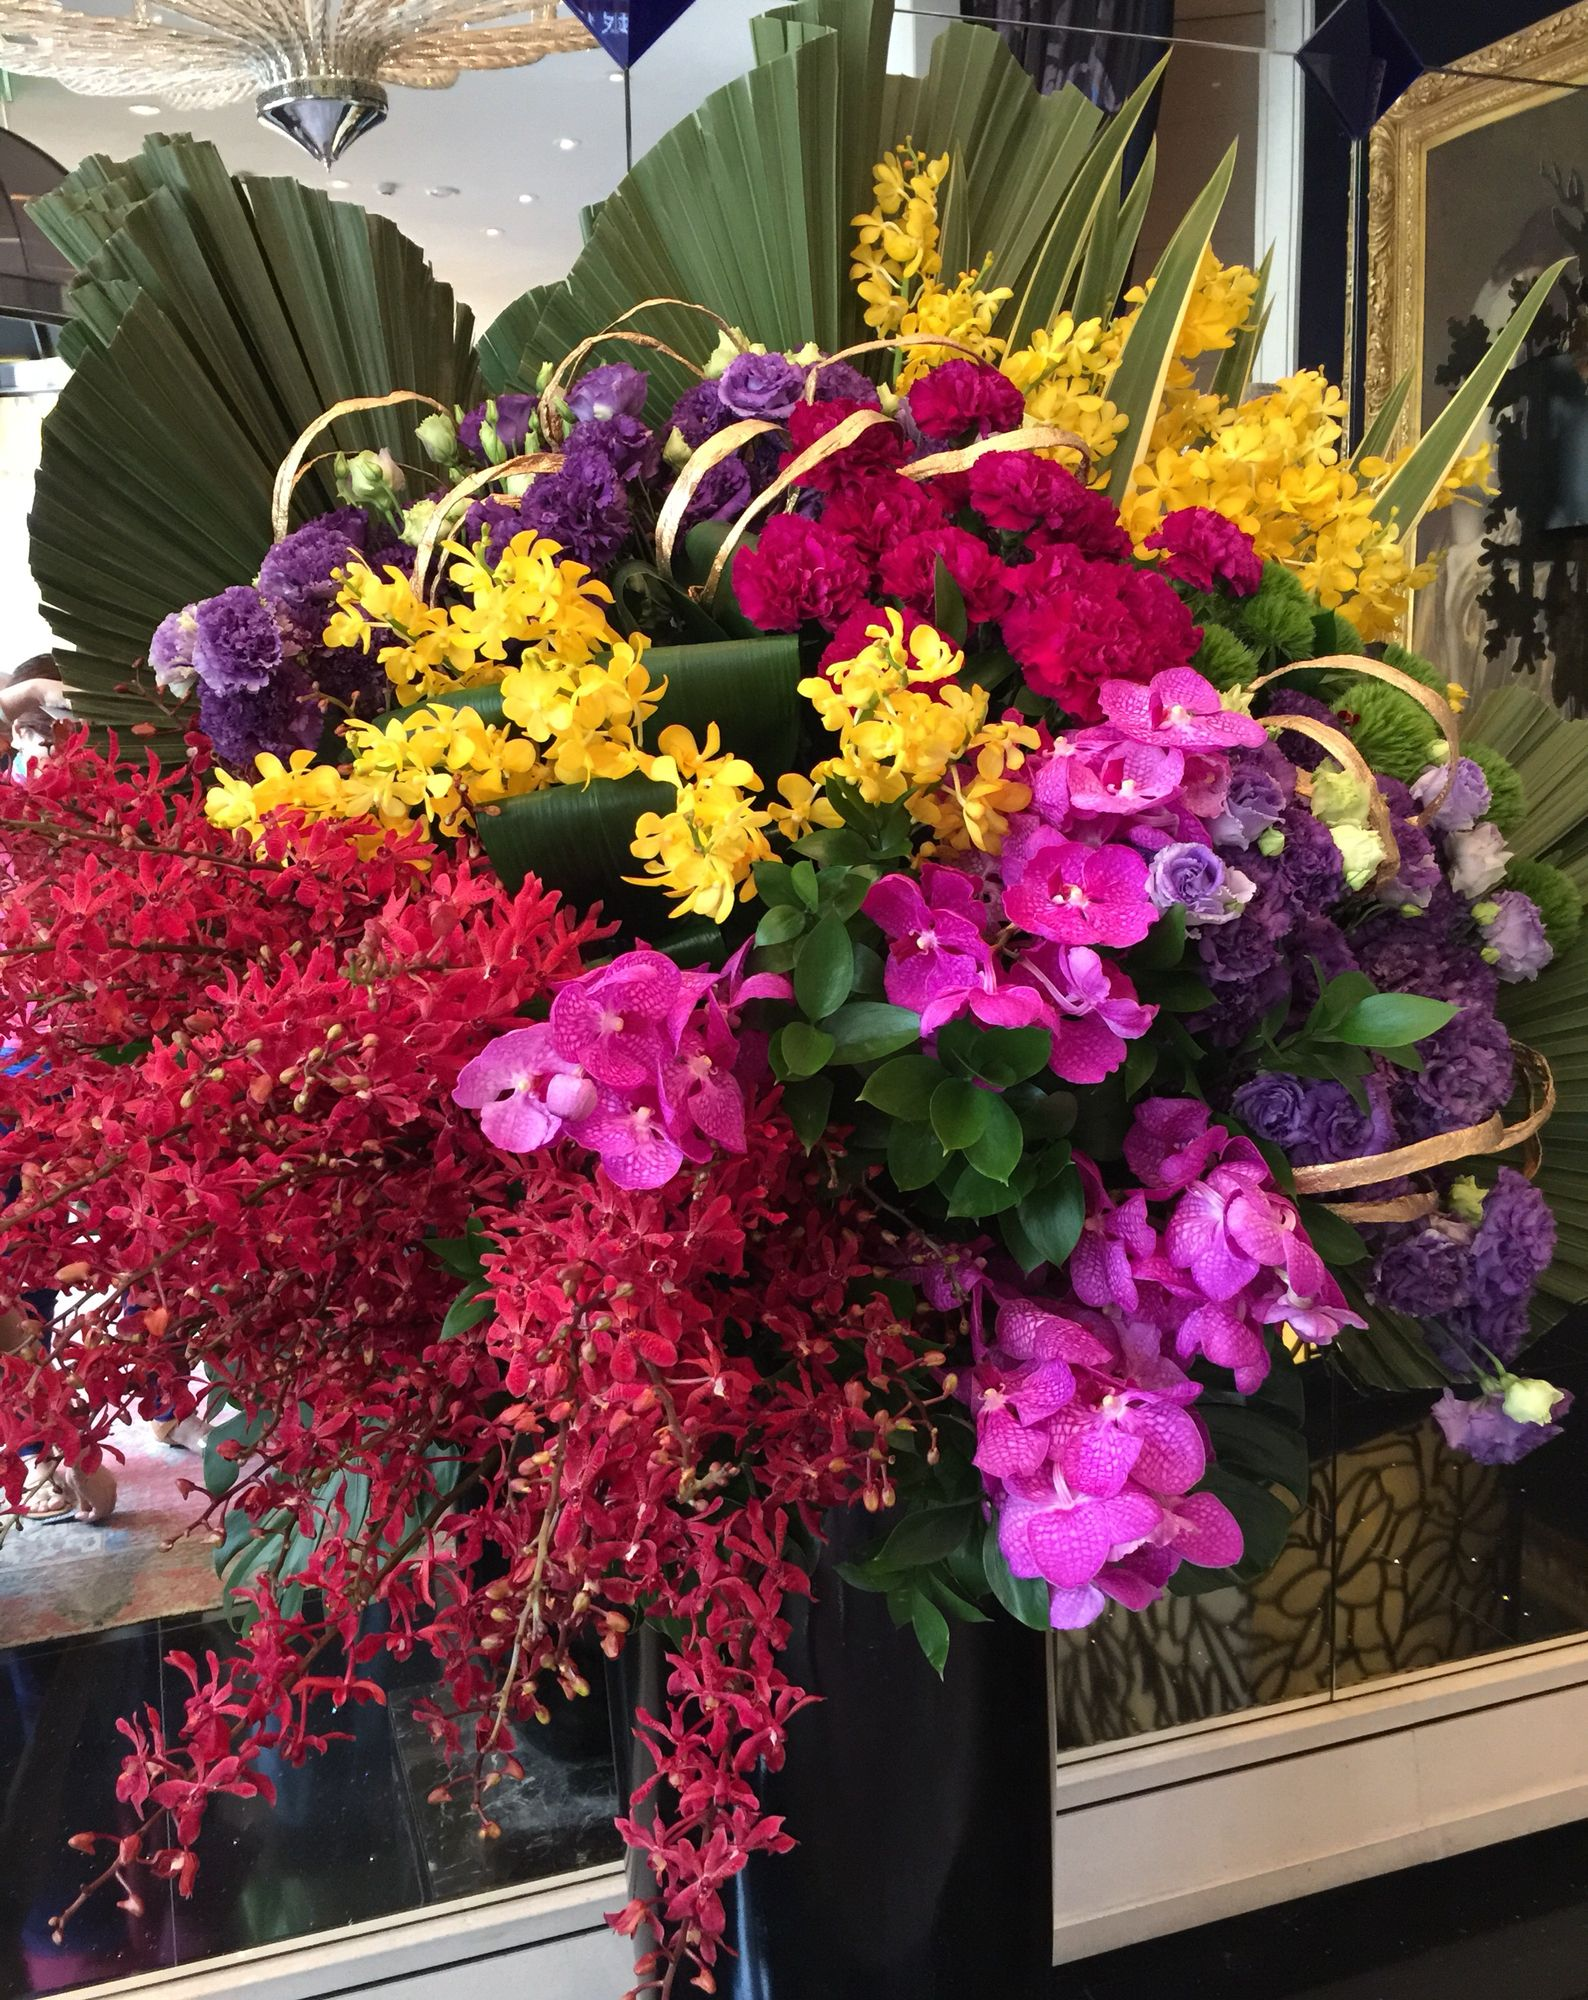 Flowers in Hotel lobby, Taiwan Hotel Florals Pinterest